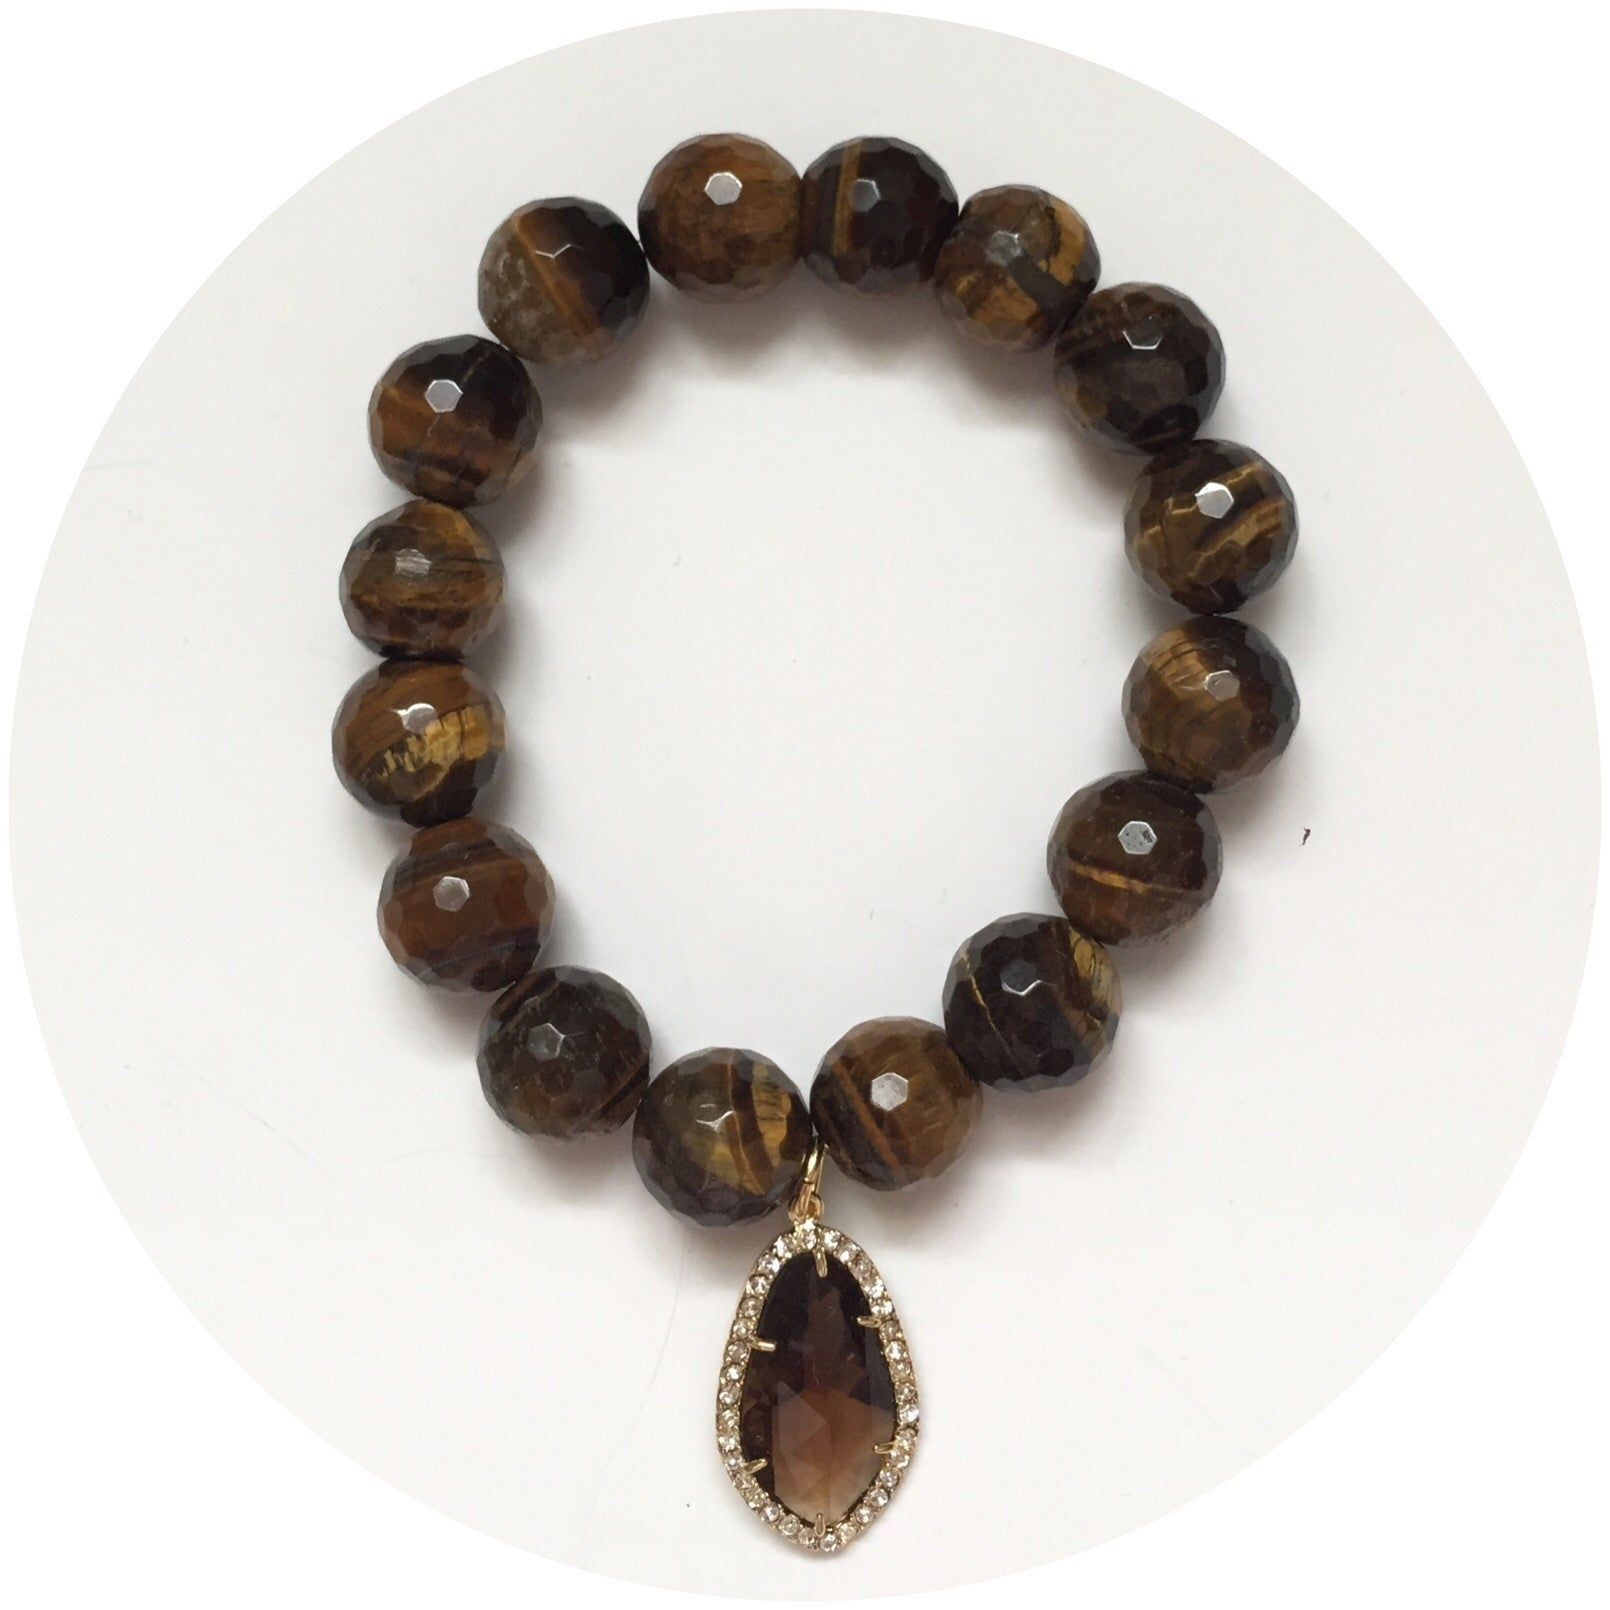 Tiger Eye with Pavé Topaz Glass Pendant - Oriana Lamarca LLC